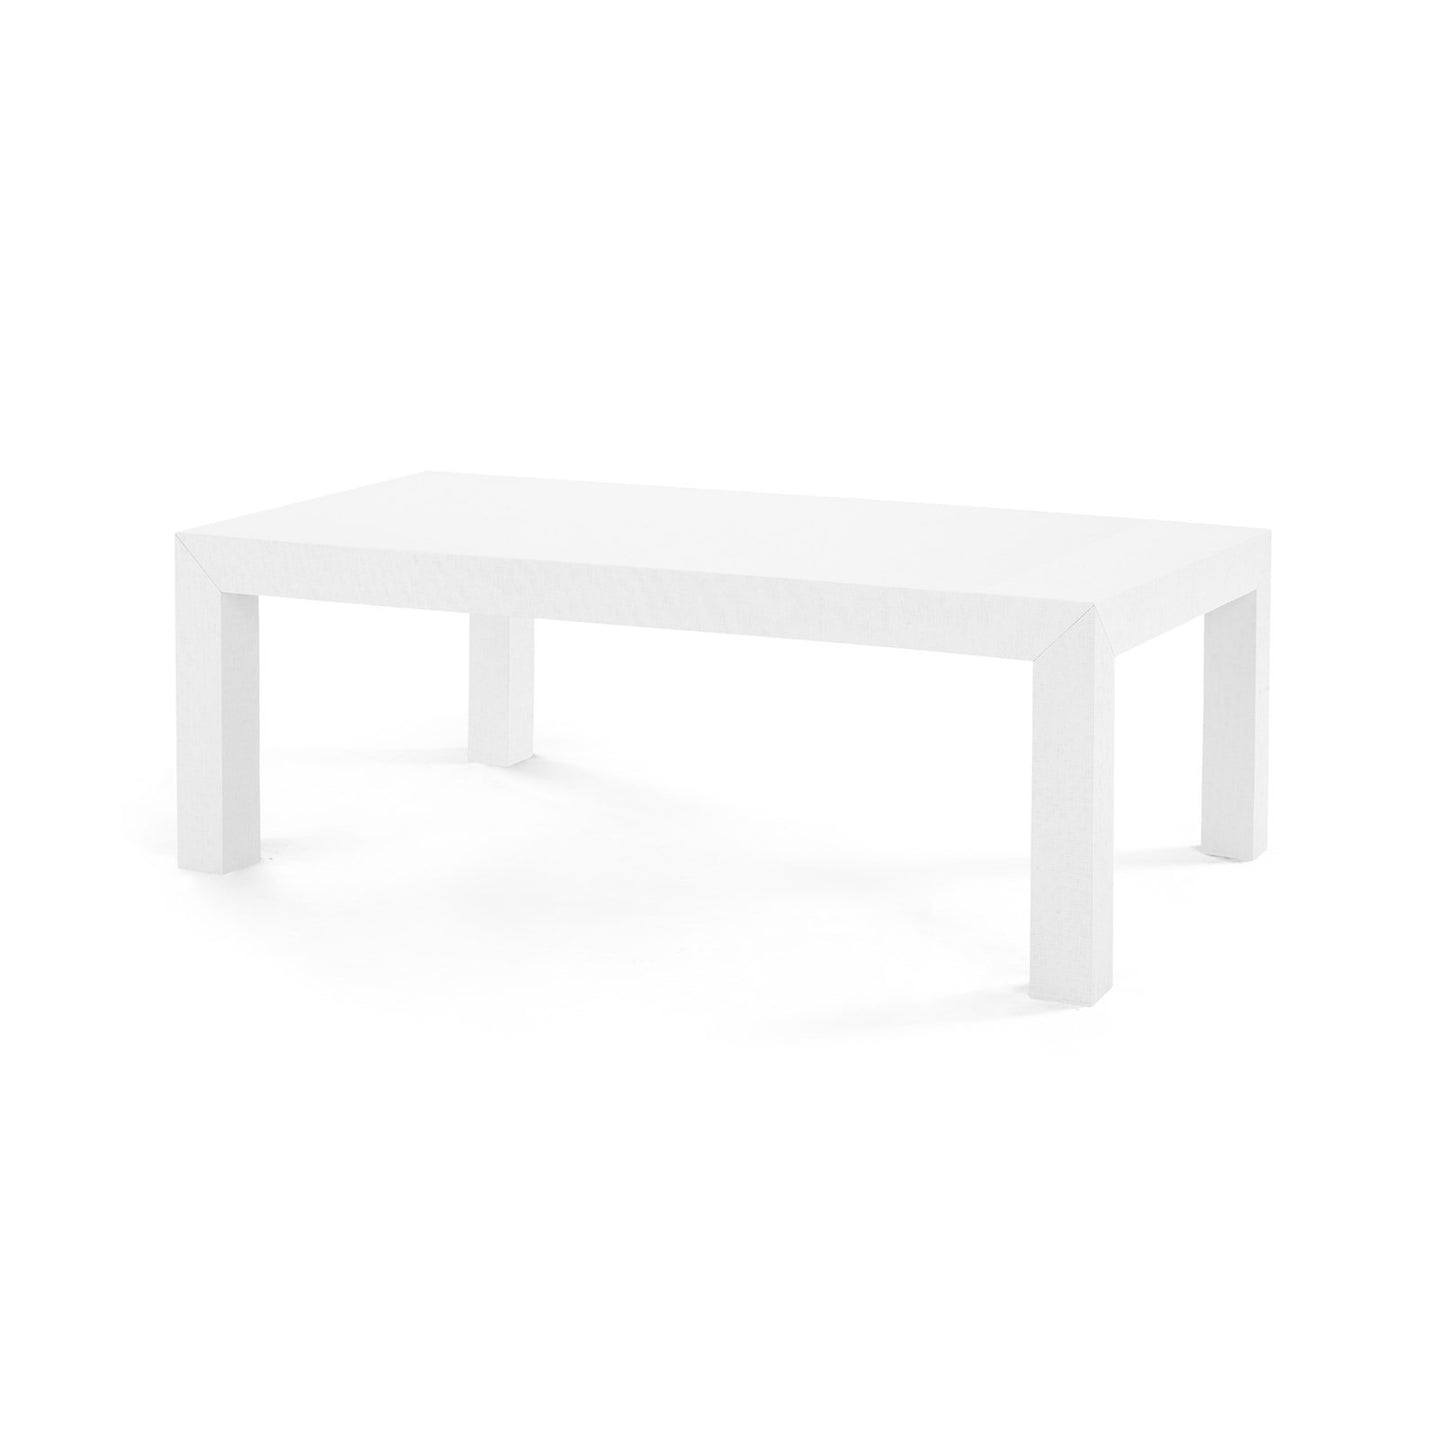 Parson coffee table in navy blue bungalow 5 - Bungalow 5 Parsons Coffee Table White Angled View